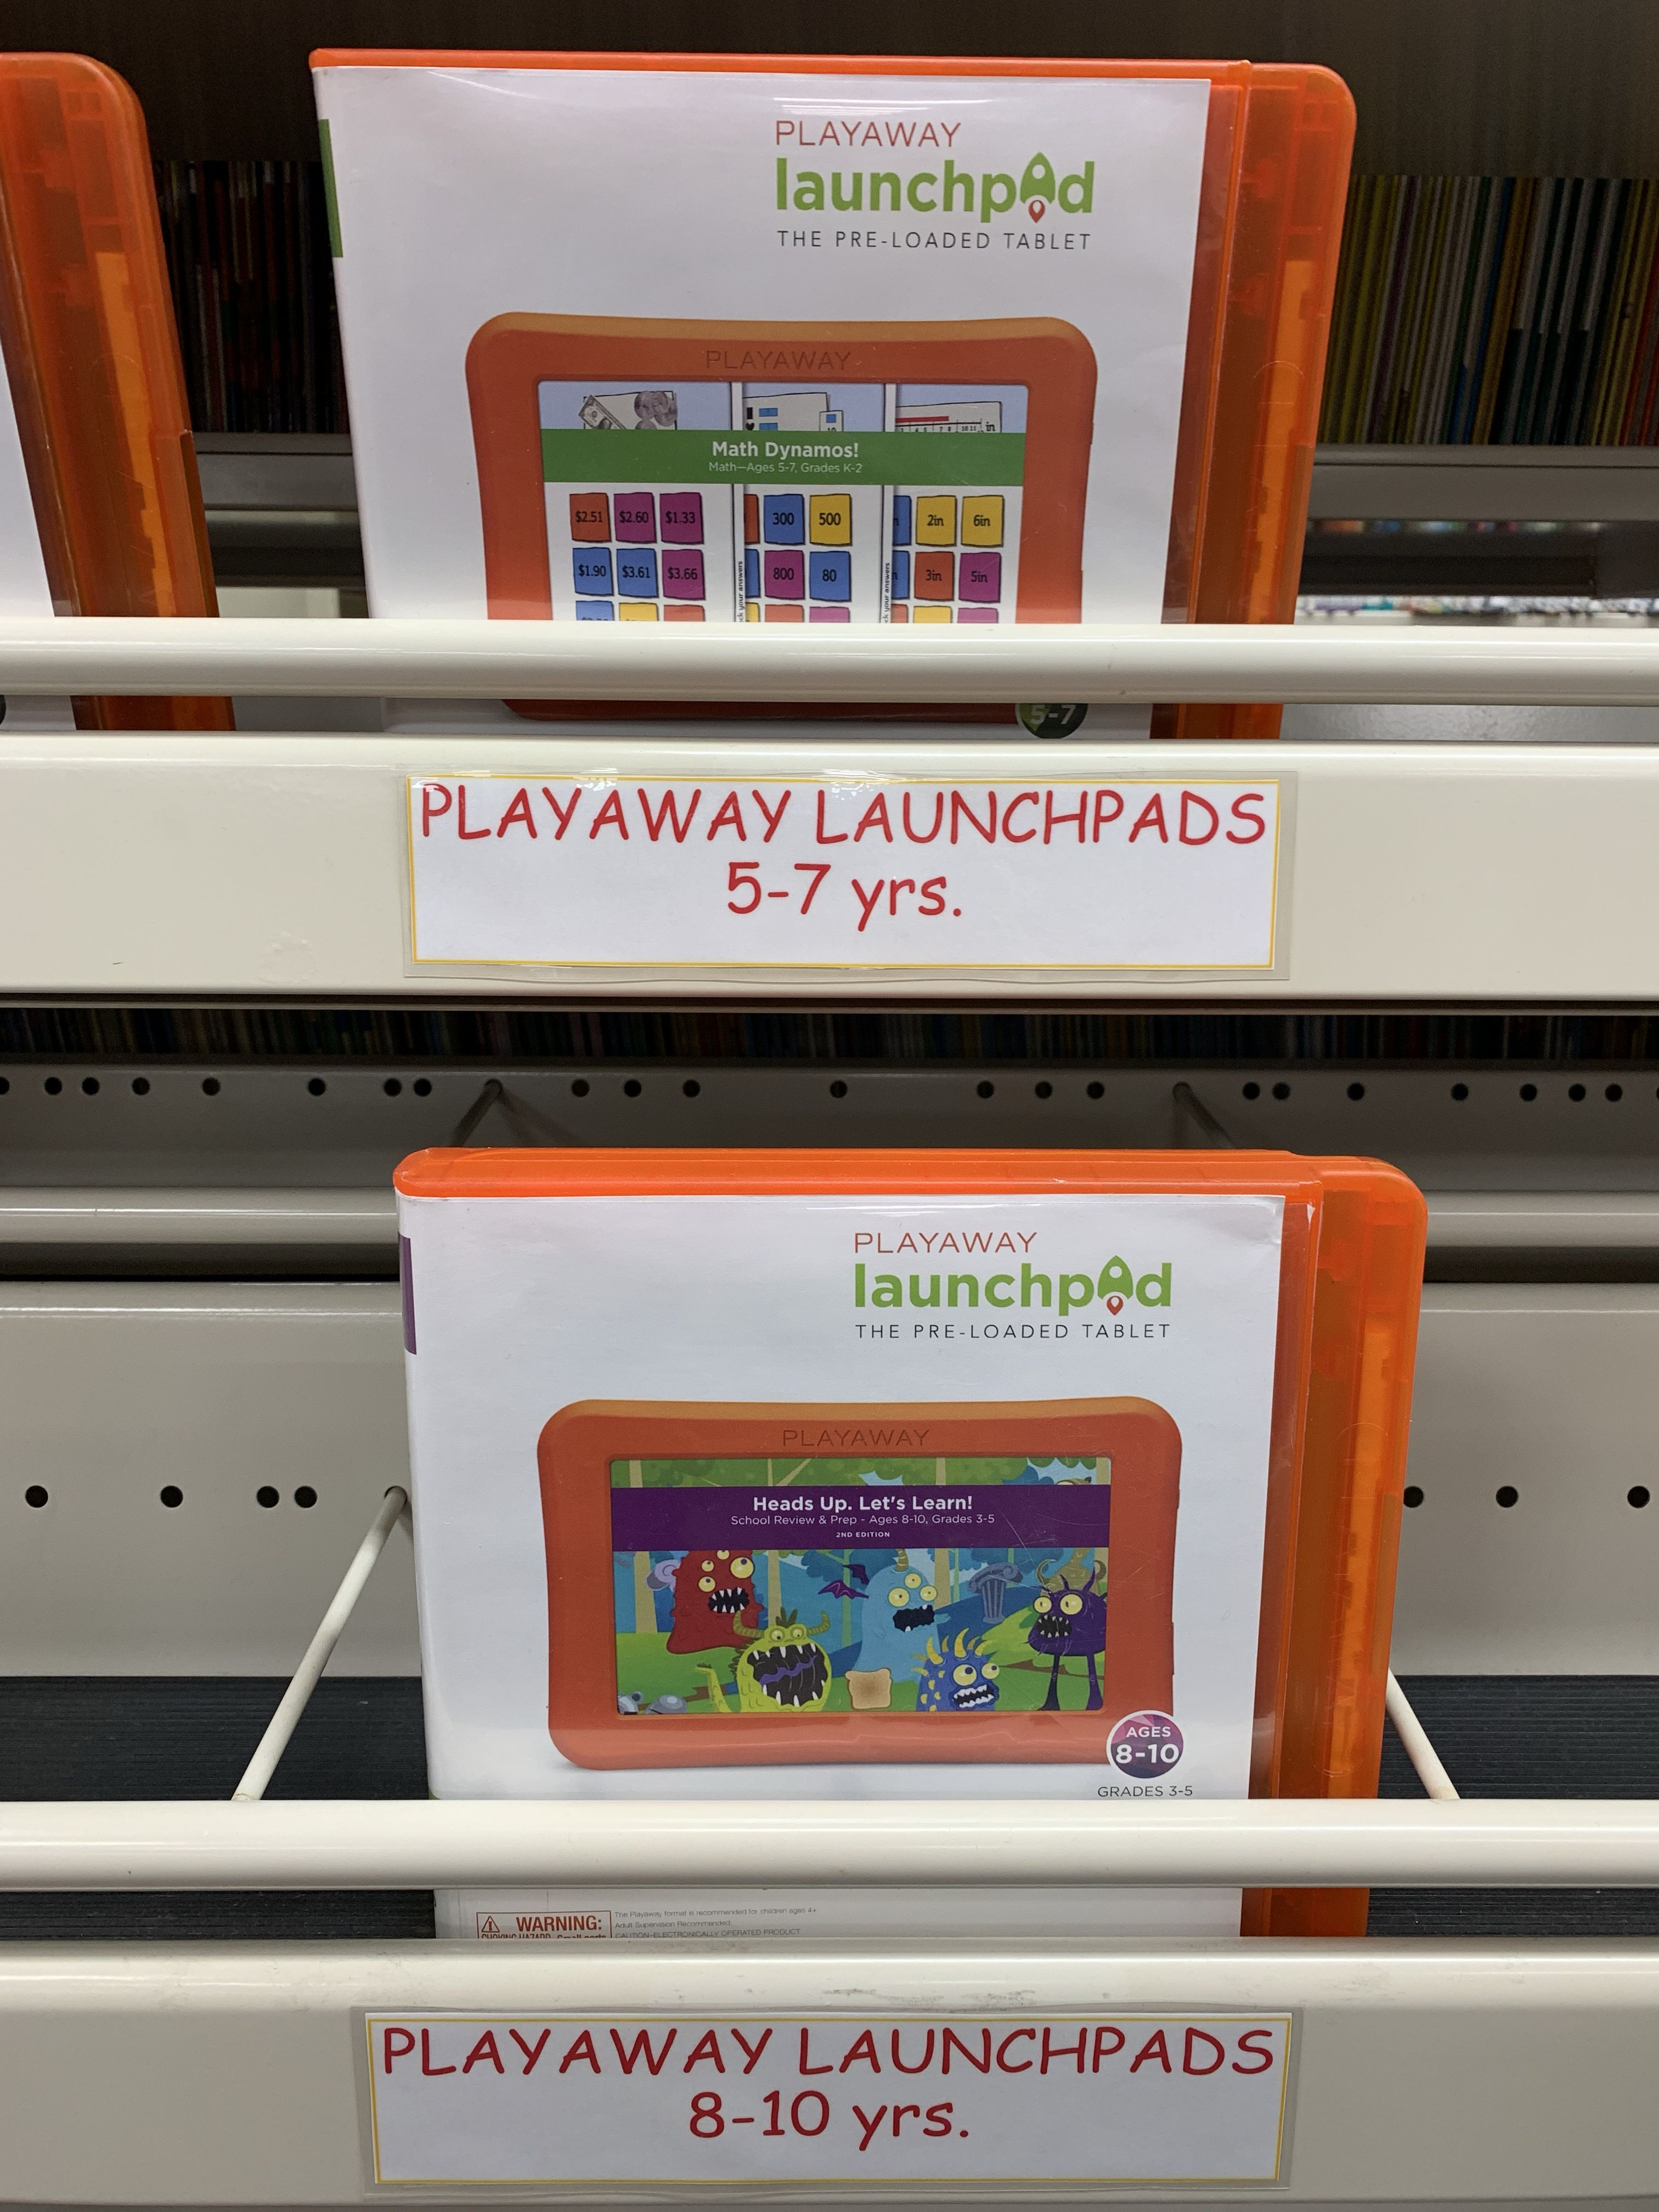 Parents, be sure to pick up a Playaway Launchpad! These